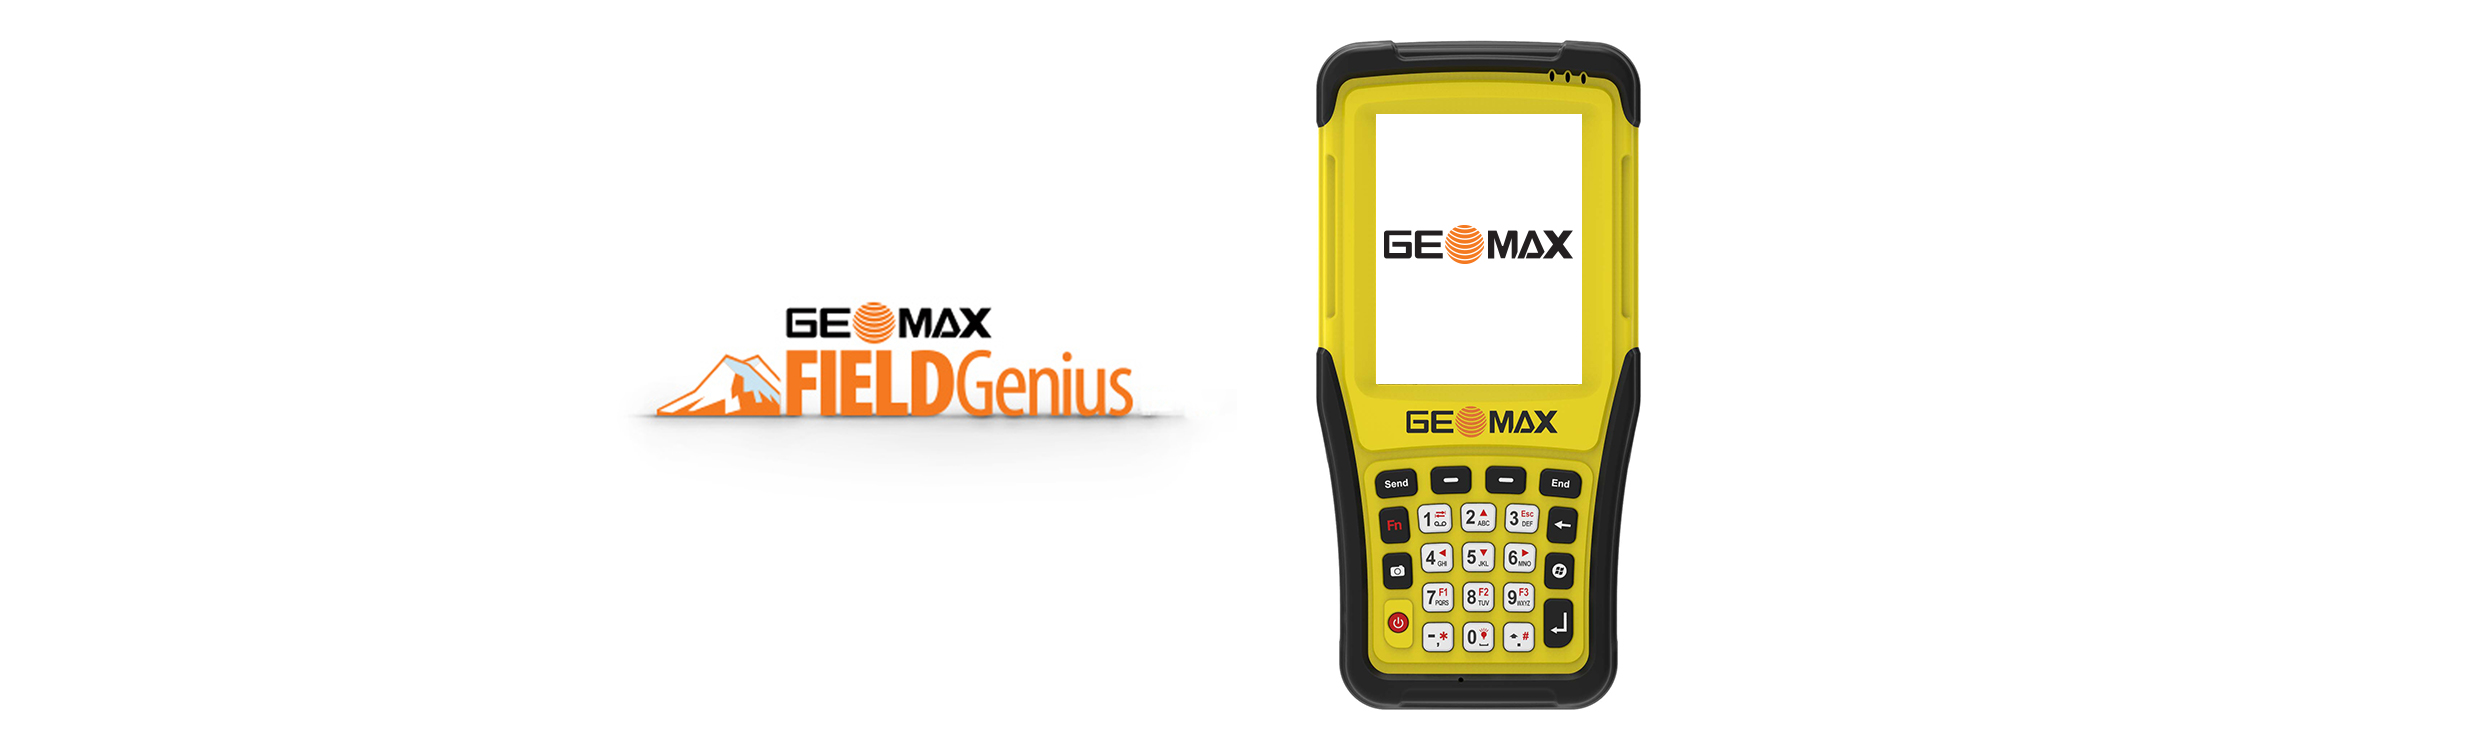 FieldGenius 2480x750